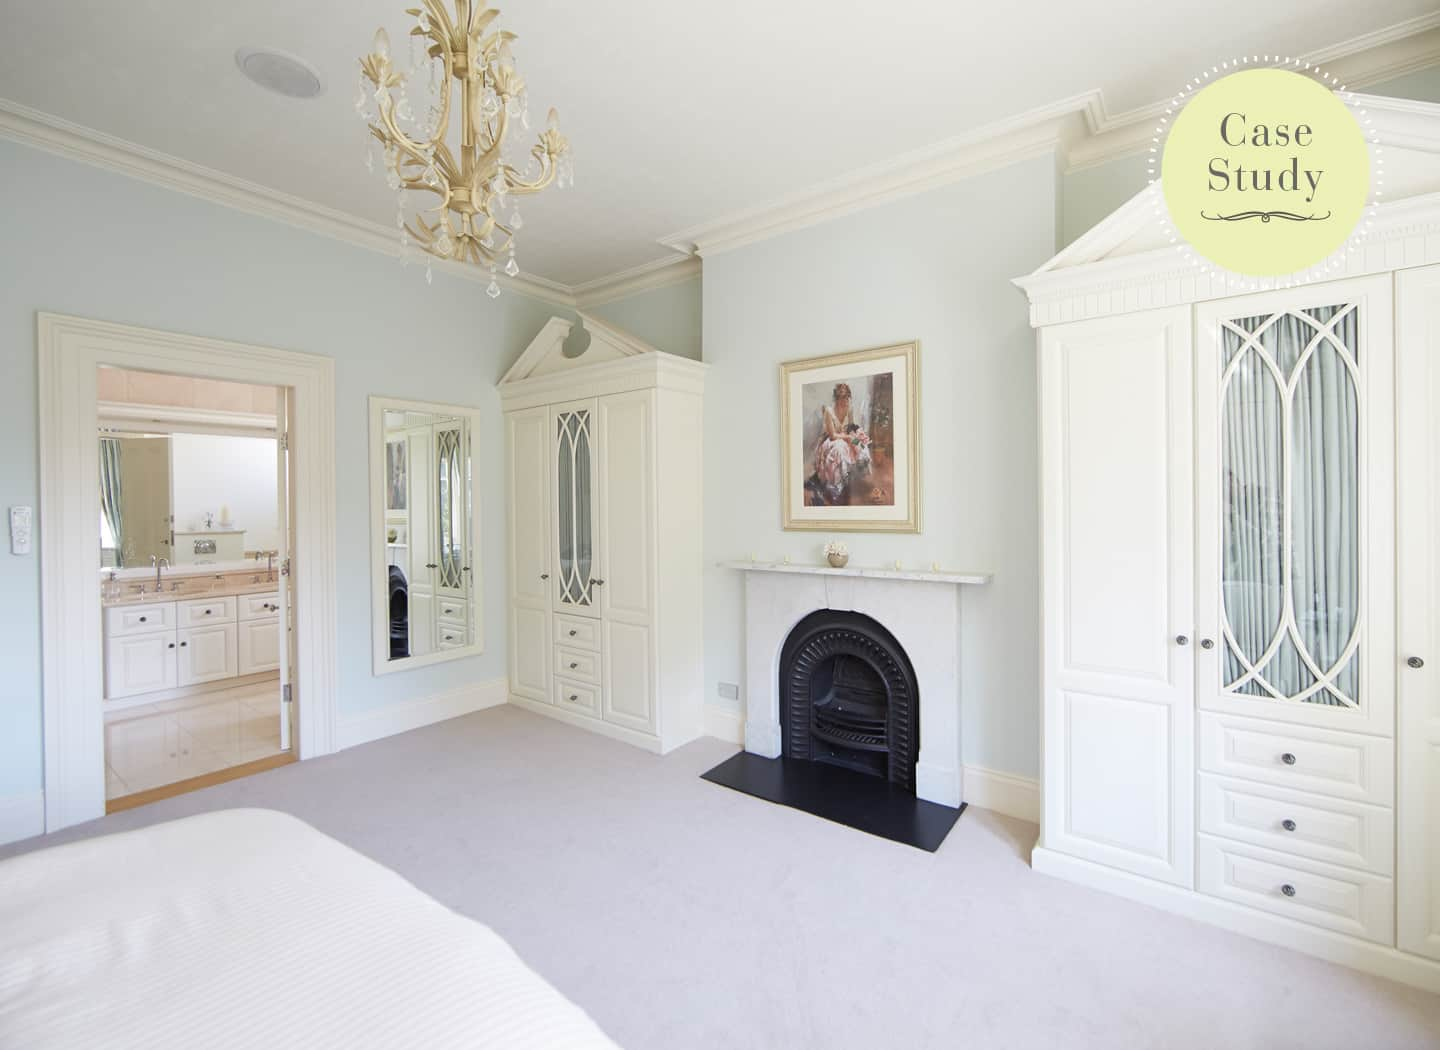 Case study showing traditional master bedroom